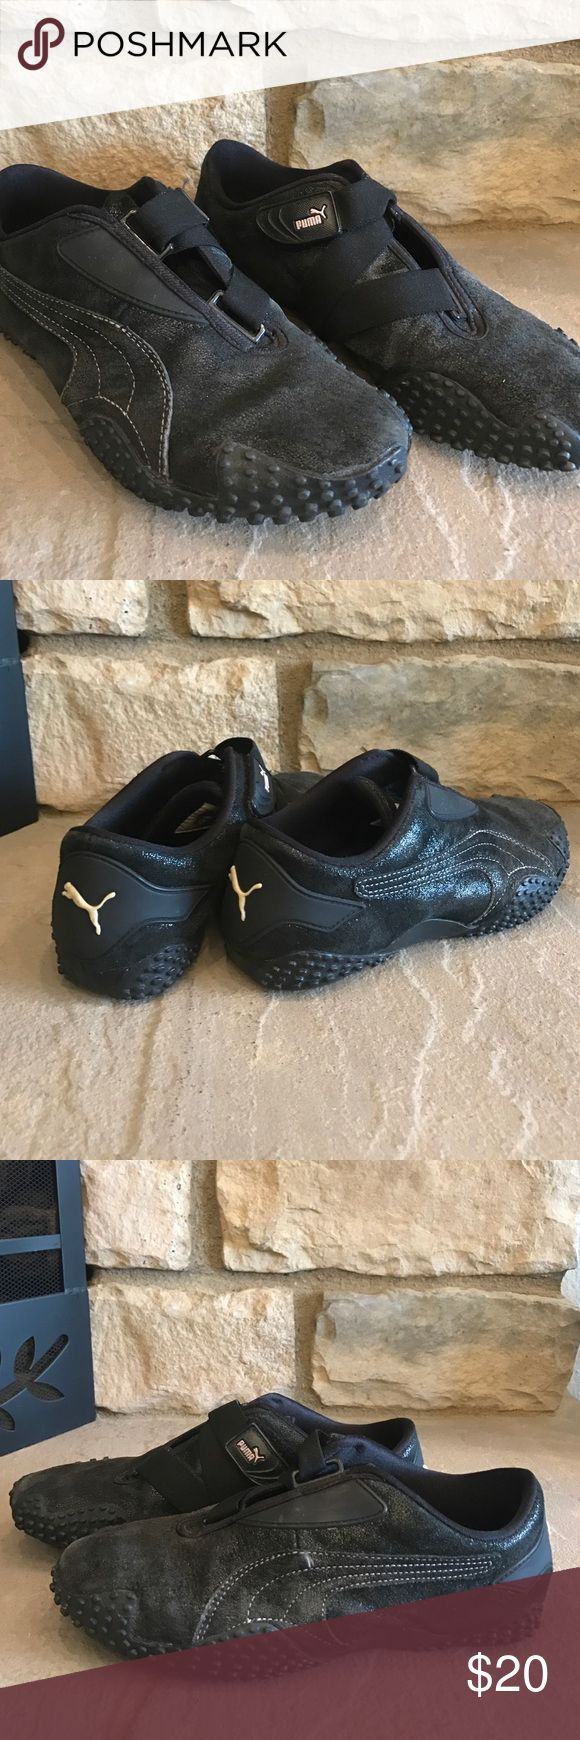 🦋Puma Tennis Shoes🦋 Black Puma shoes, in good condition. Velcro strap. Shoes are comfy. Used but in good shape. No tears, etc. Puma Shoes Sneakers